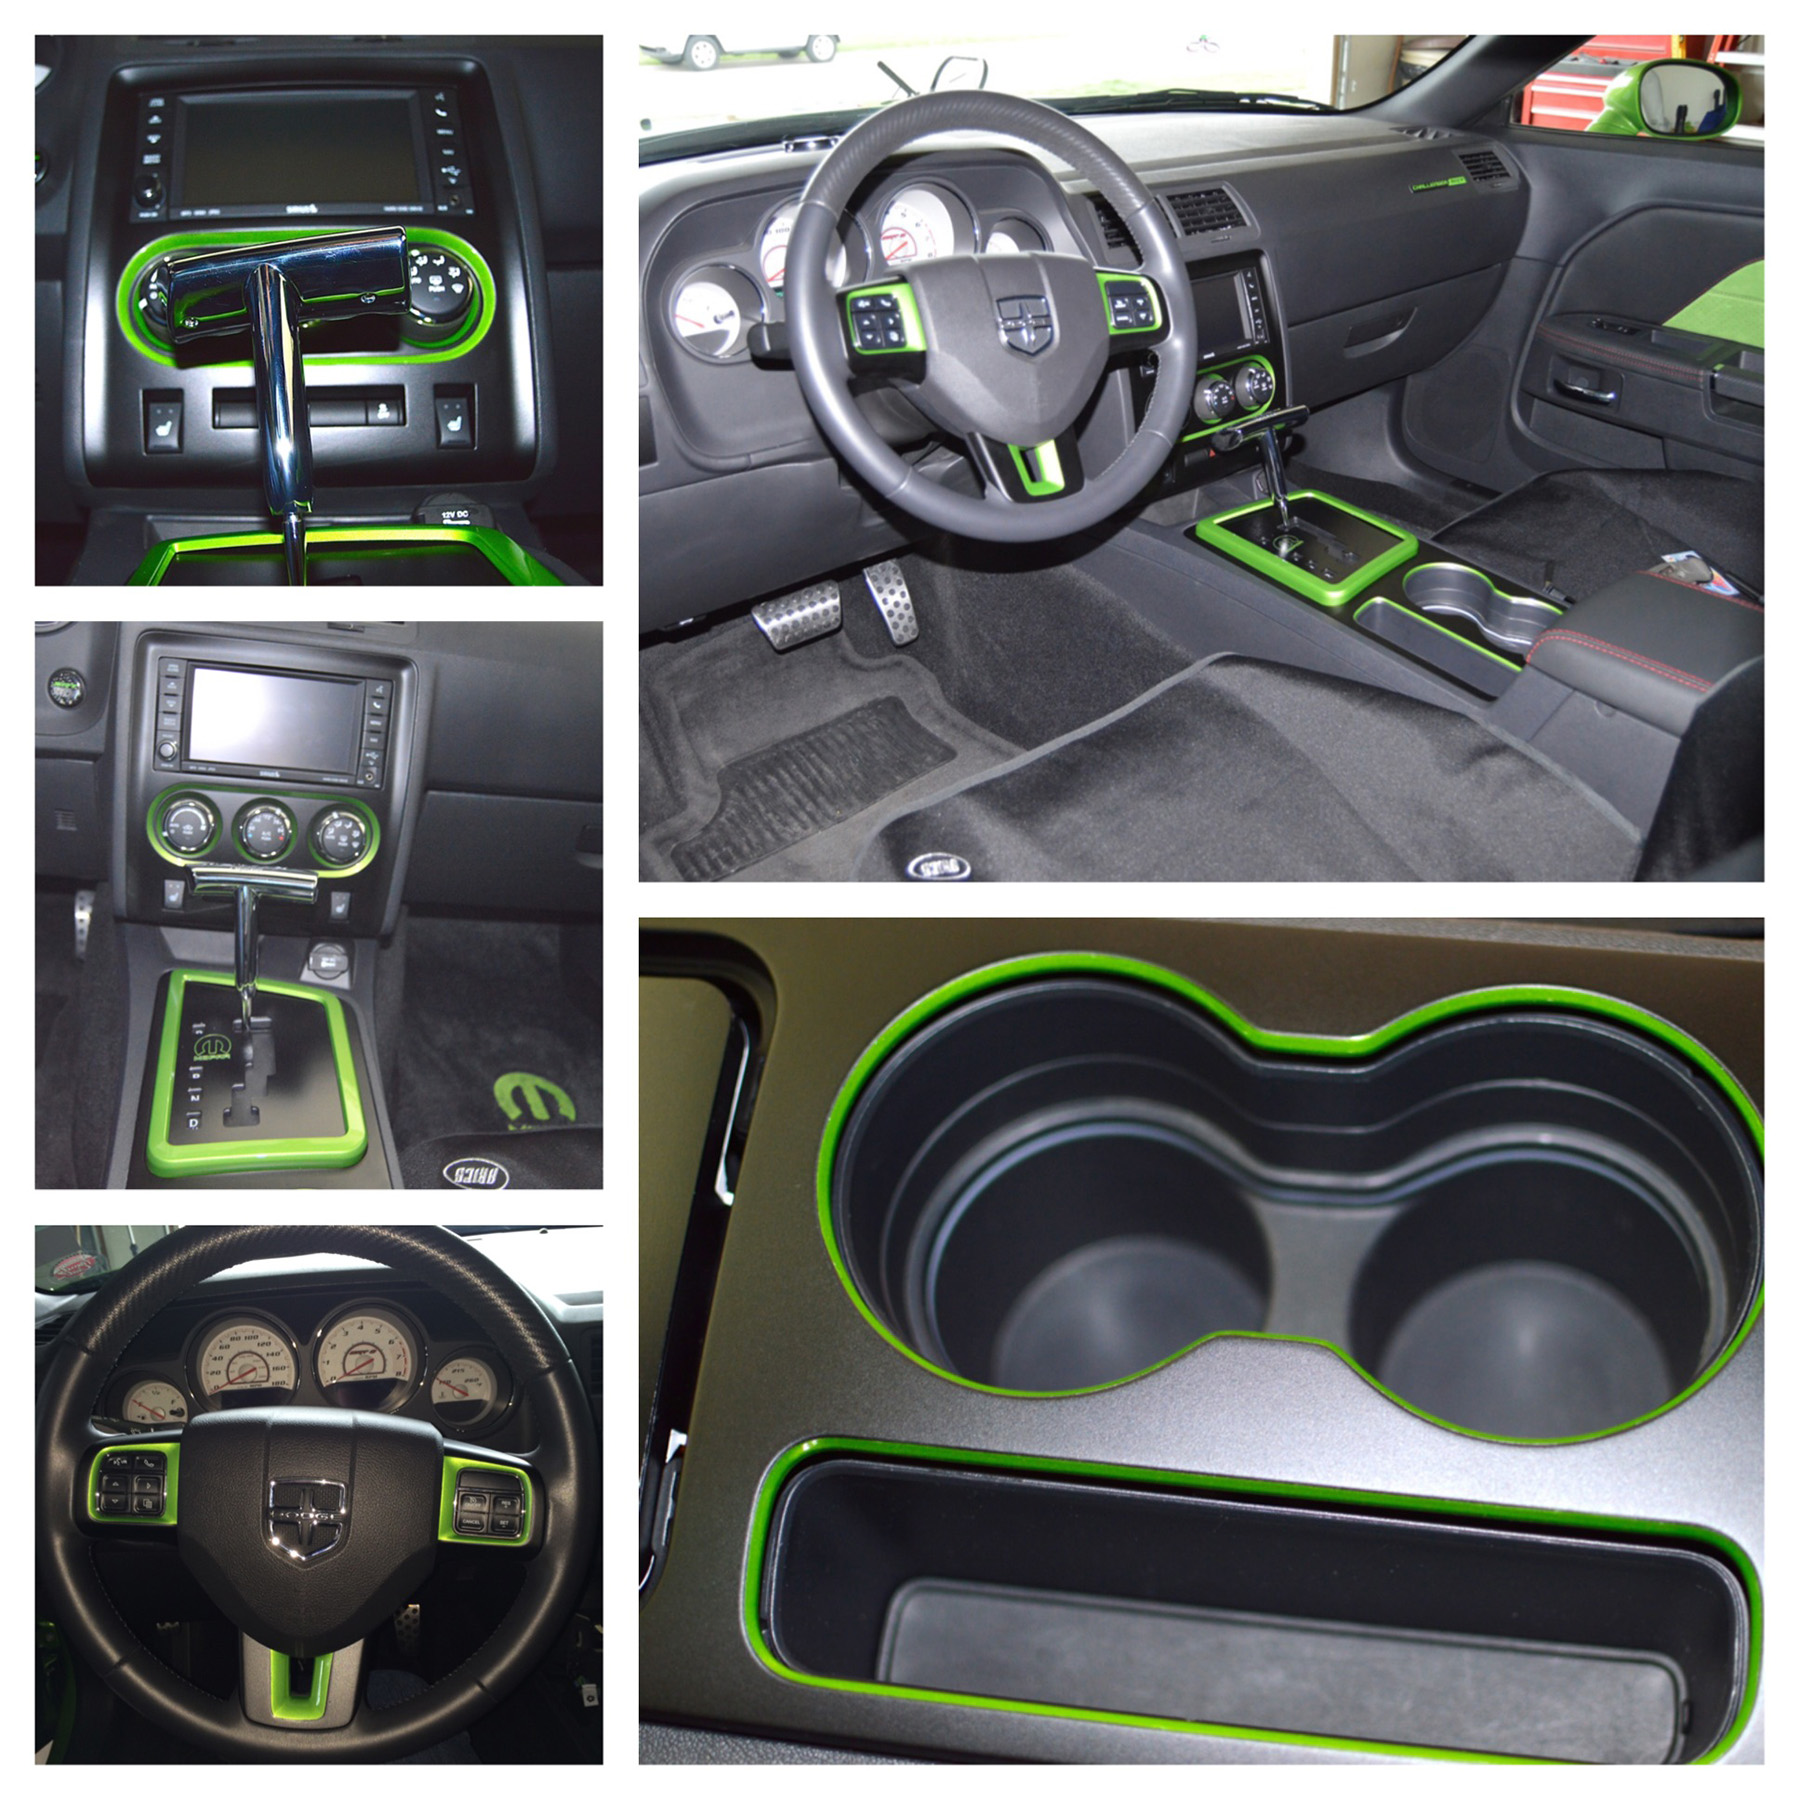 hight resolution of the chrome mopar t handle shifter and the custom painted console and steering wheel trim in green with envy